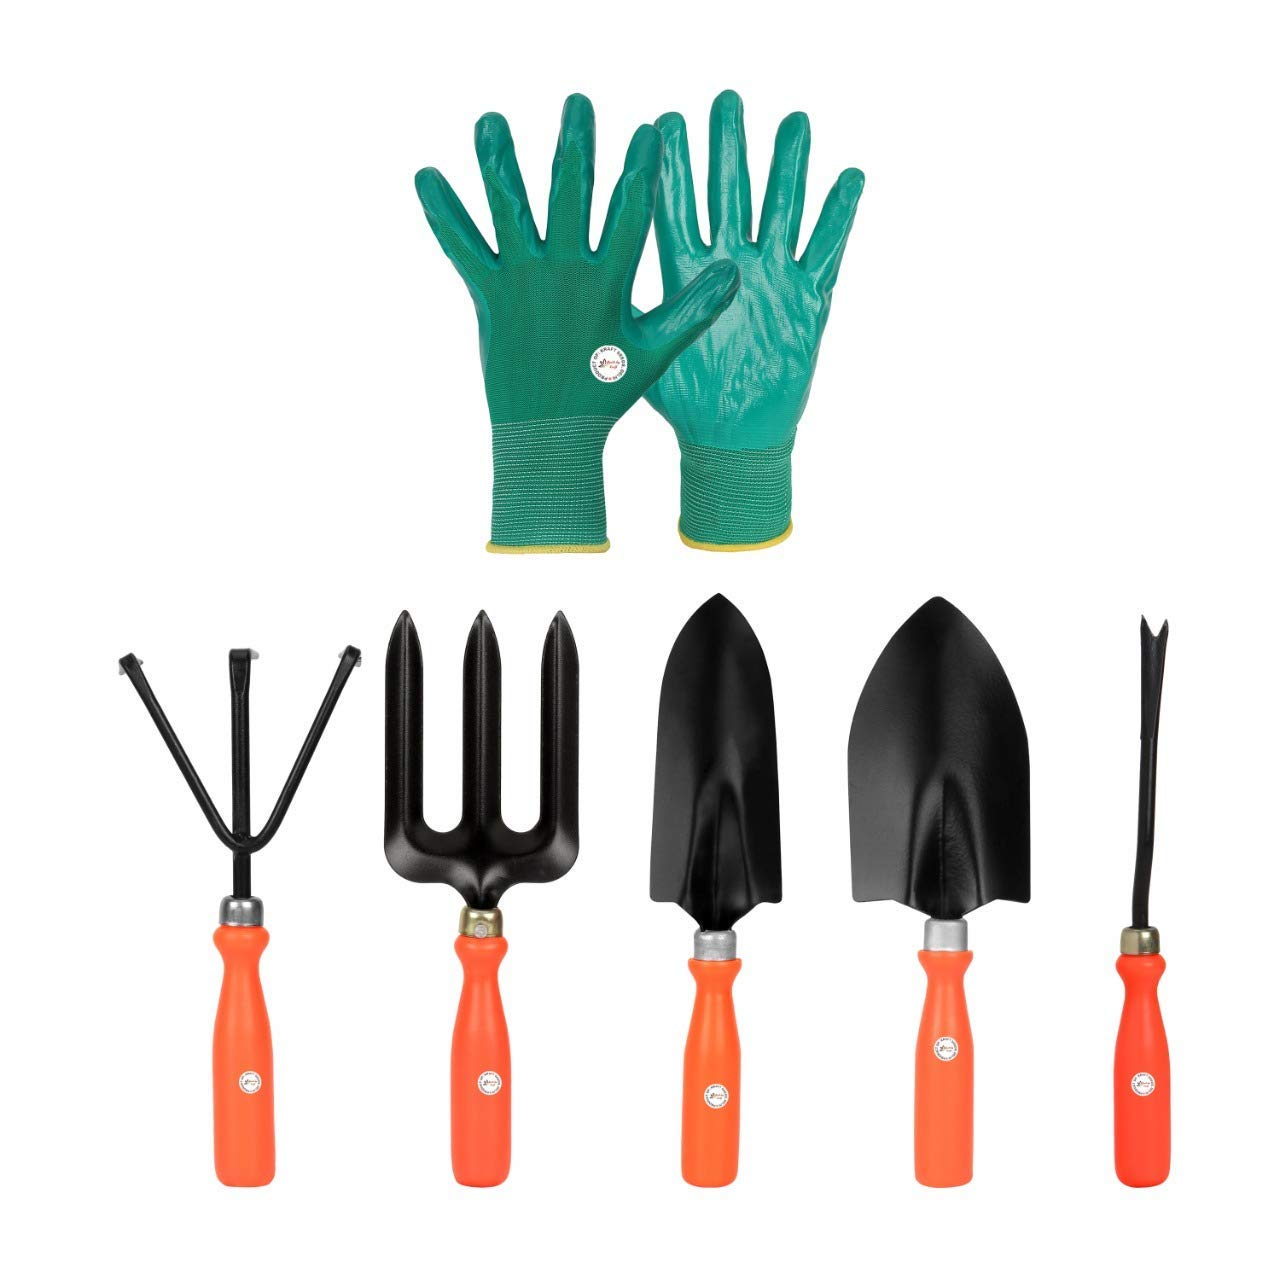 Kraft Seeds 5 Best Gardening Hand Tools Set with One Pair Hand Gloves for Your Garden, orange handle and black metal (Gate-001)